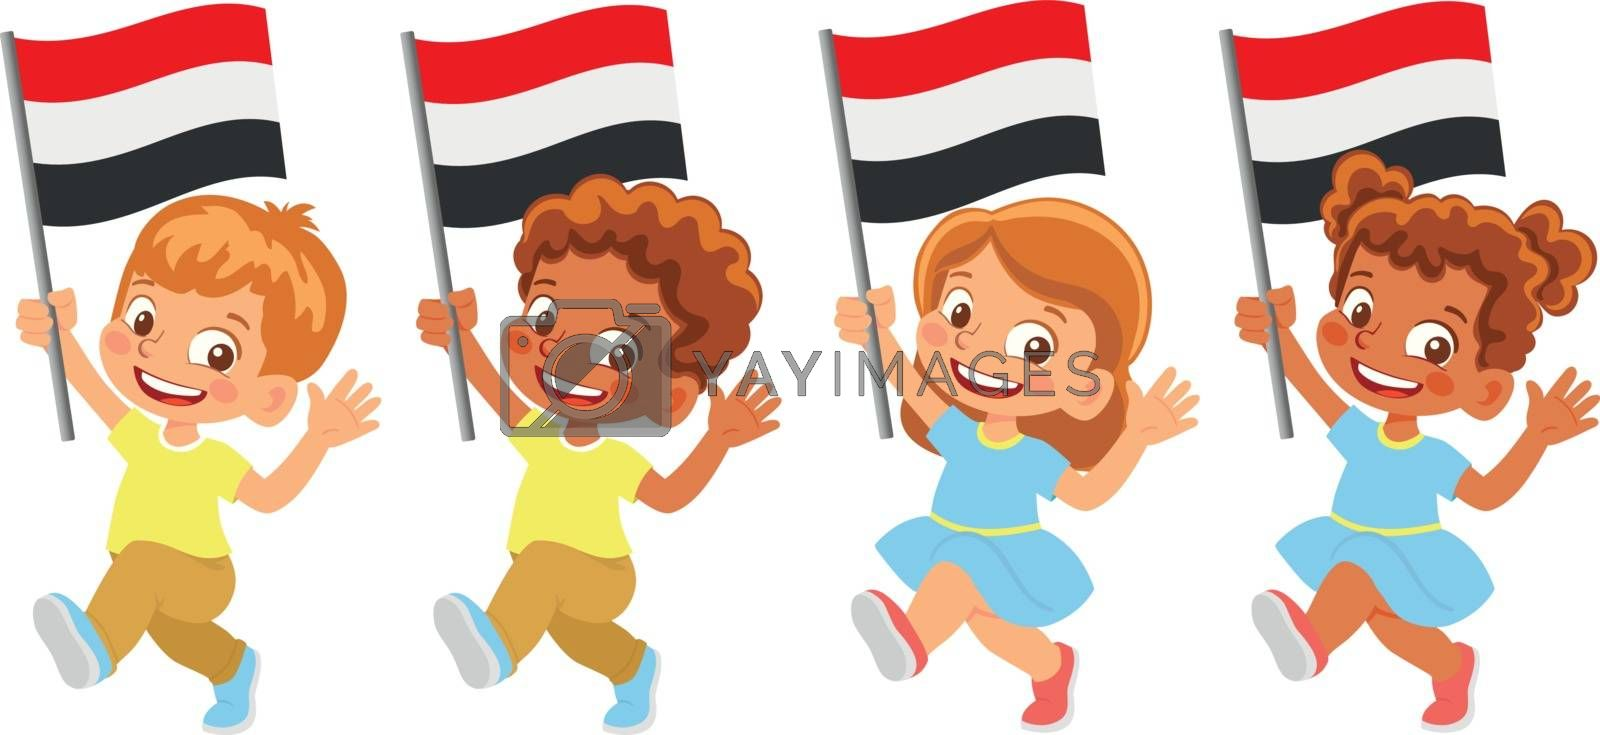 yemen flag in hand set by Visual-Content